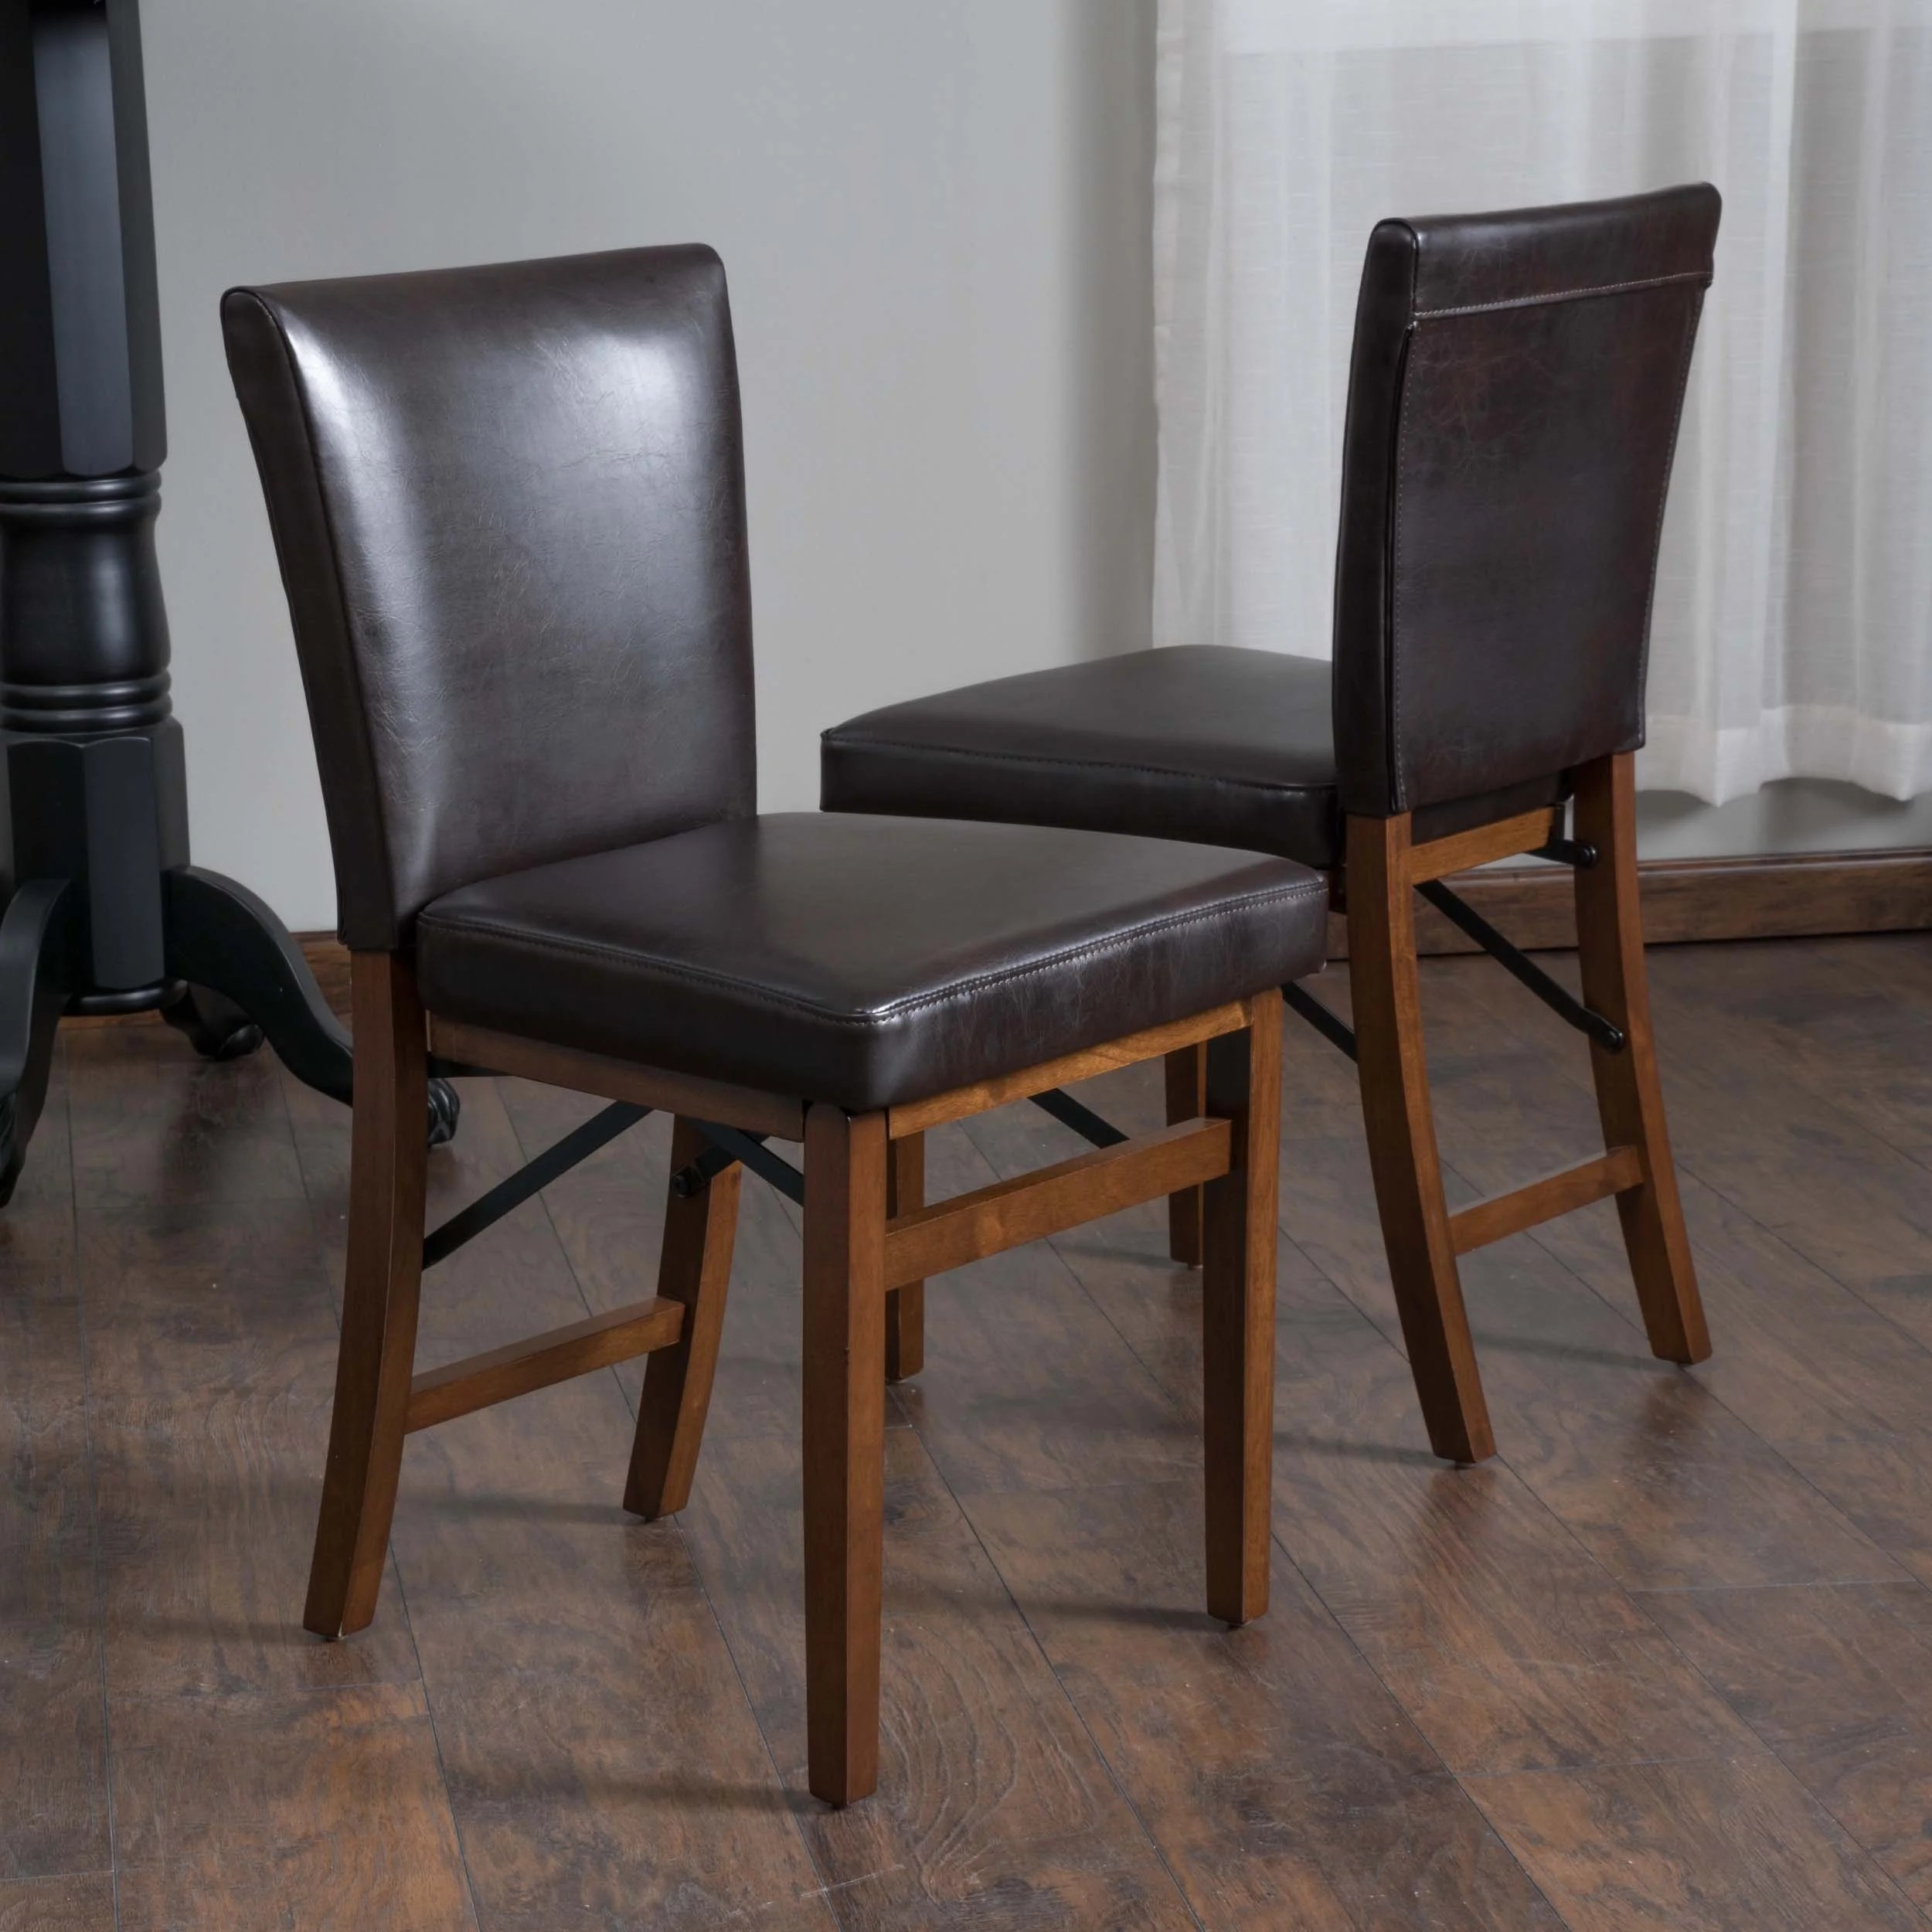 christopher knight leather chair farmhouse kitchen table and chairs sets home lane bonded folding dining